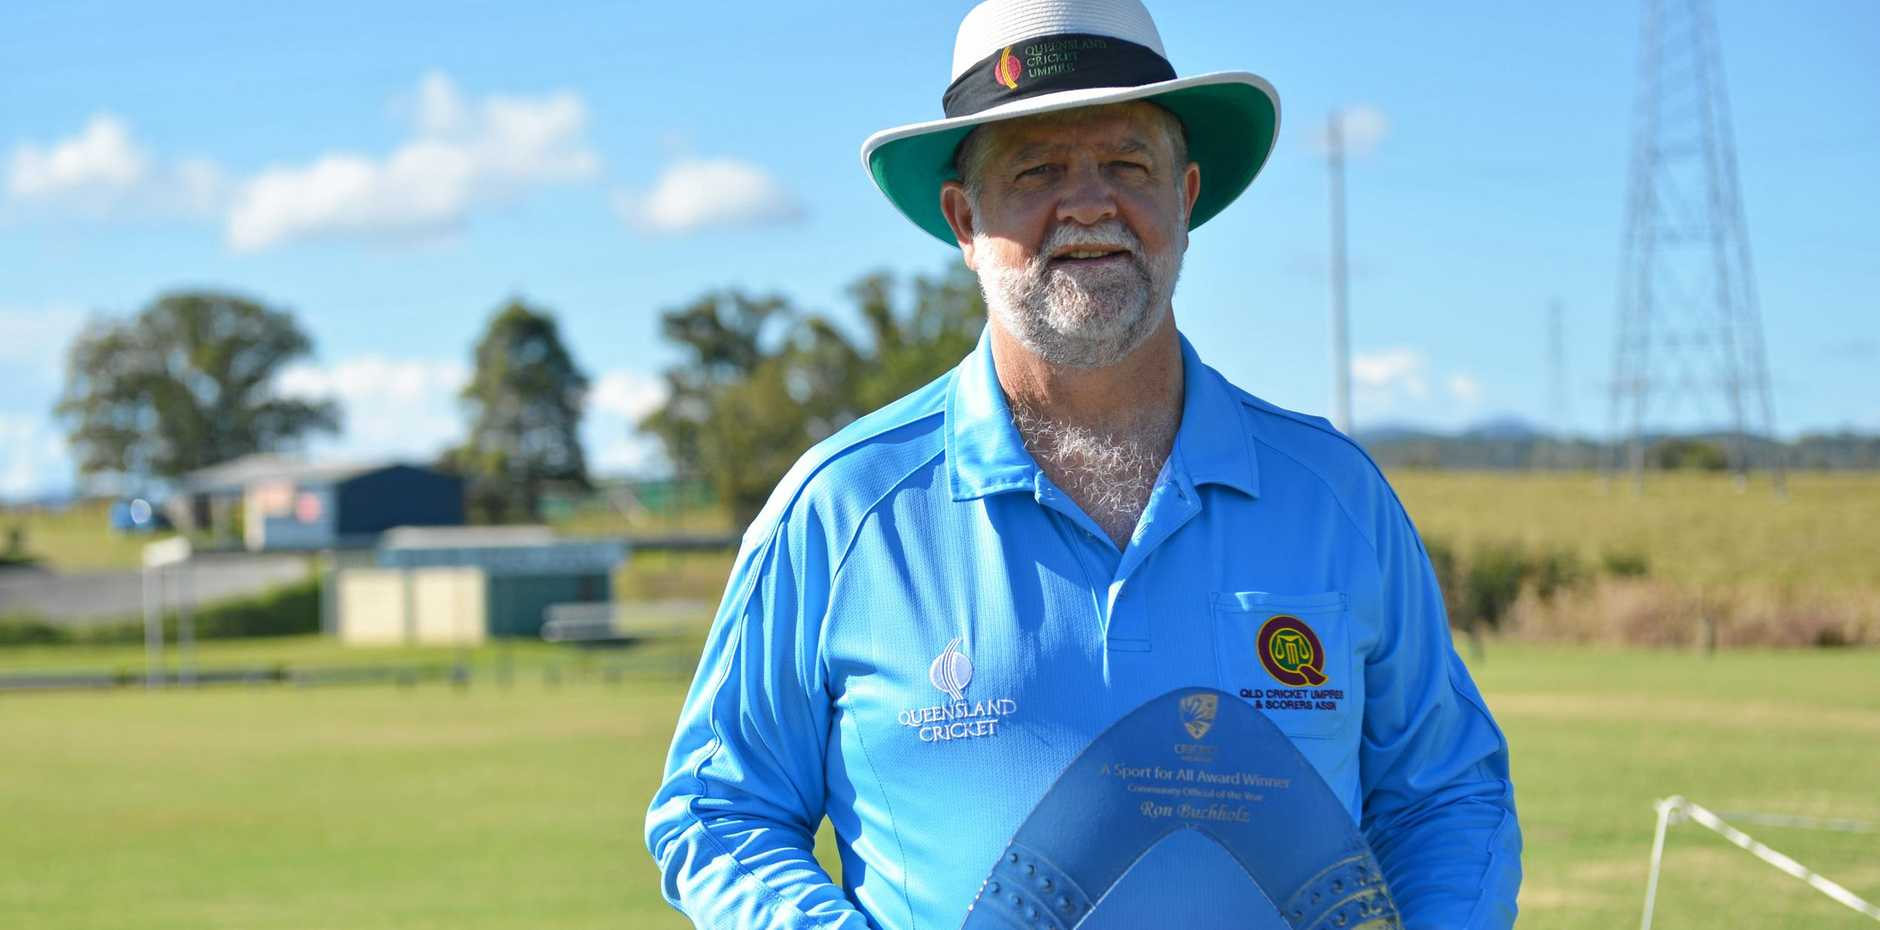 Ron Buchholz was named the Community Official of the Year and Queensland Community Umpire of the Year earlier this year.